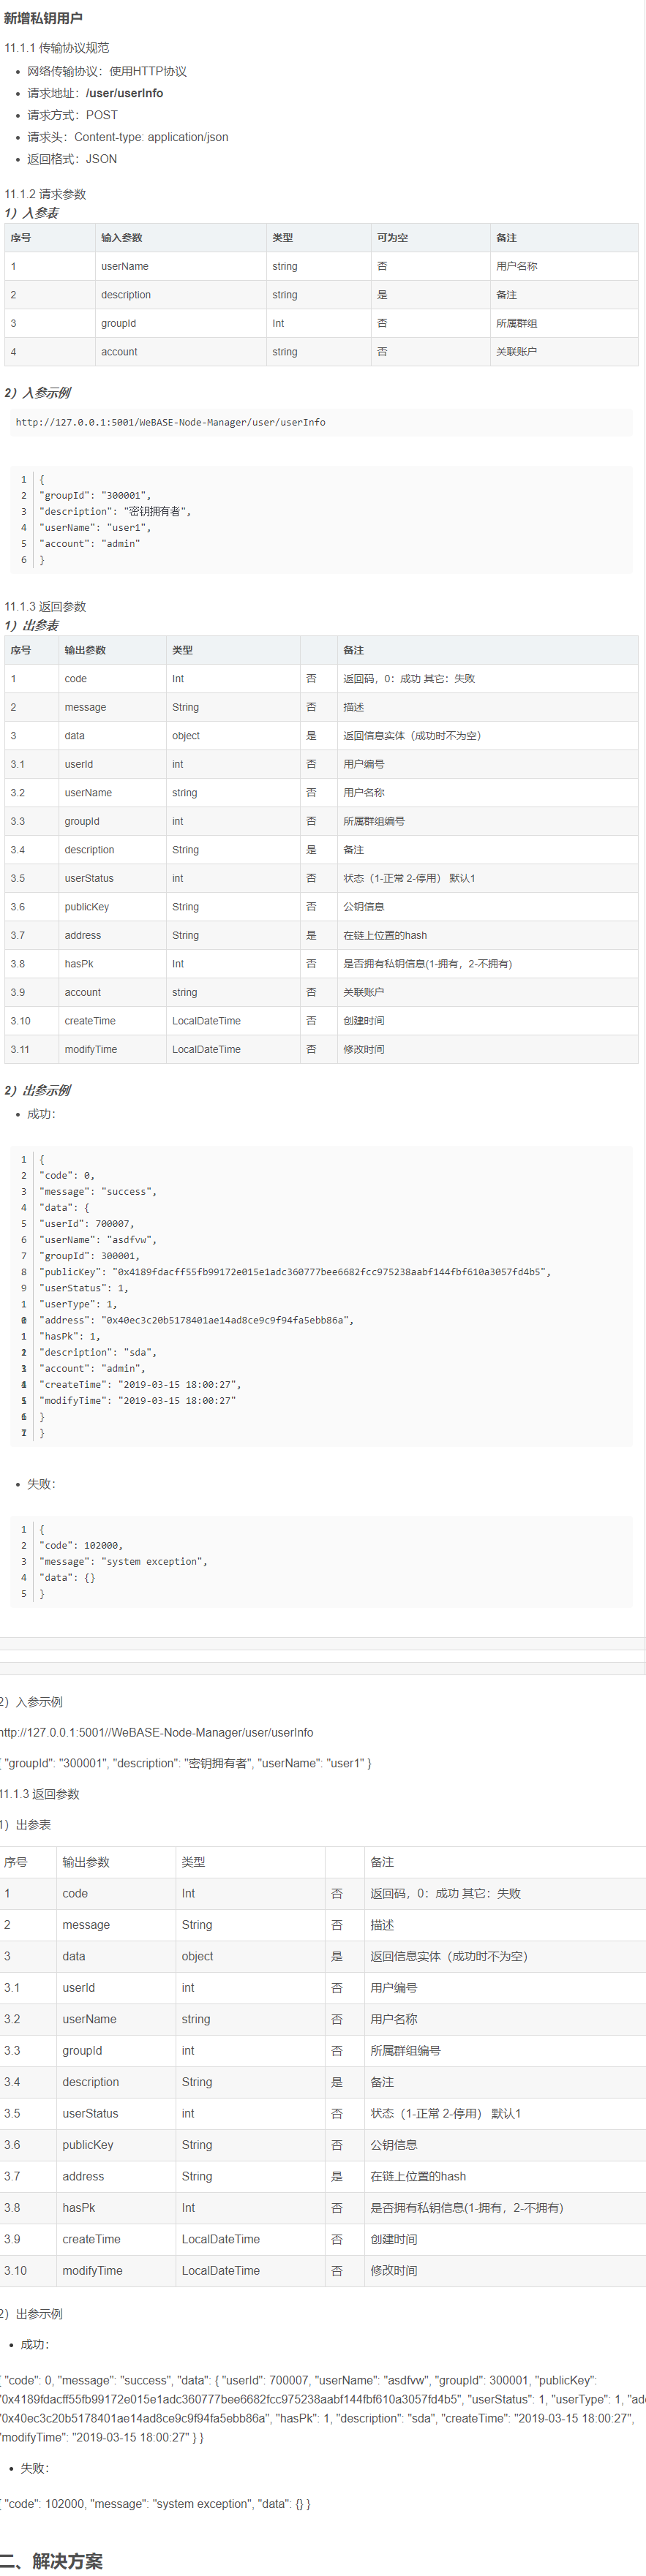 fisco bcos 调用接口报错WeBASE-Node-Manager user not logged in 版本:v1.5.2